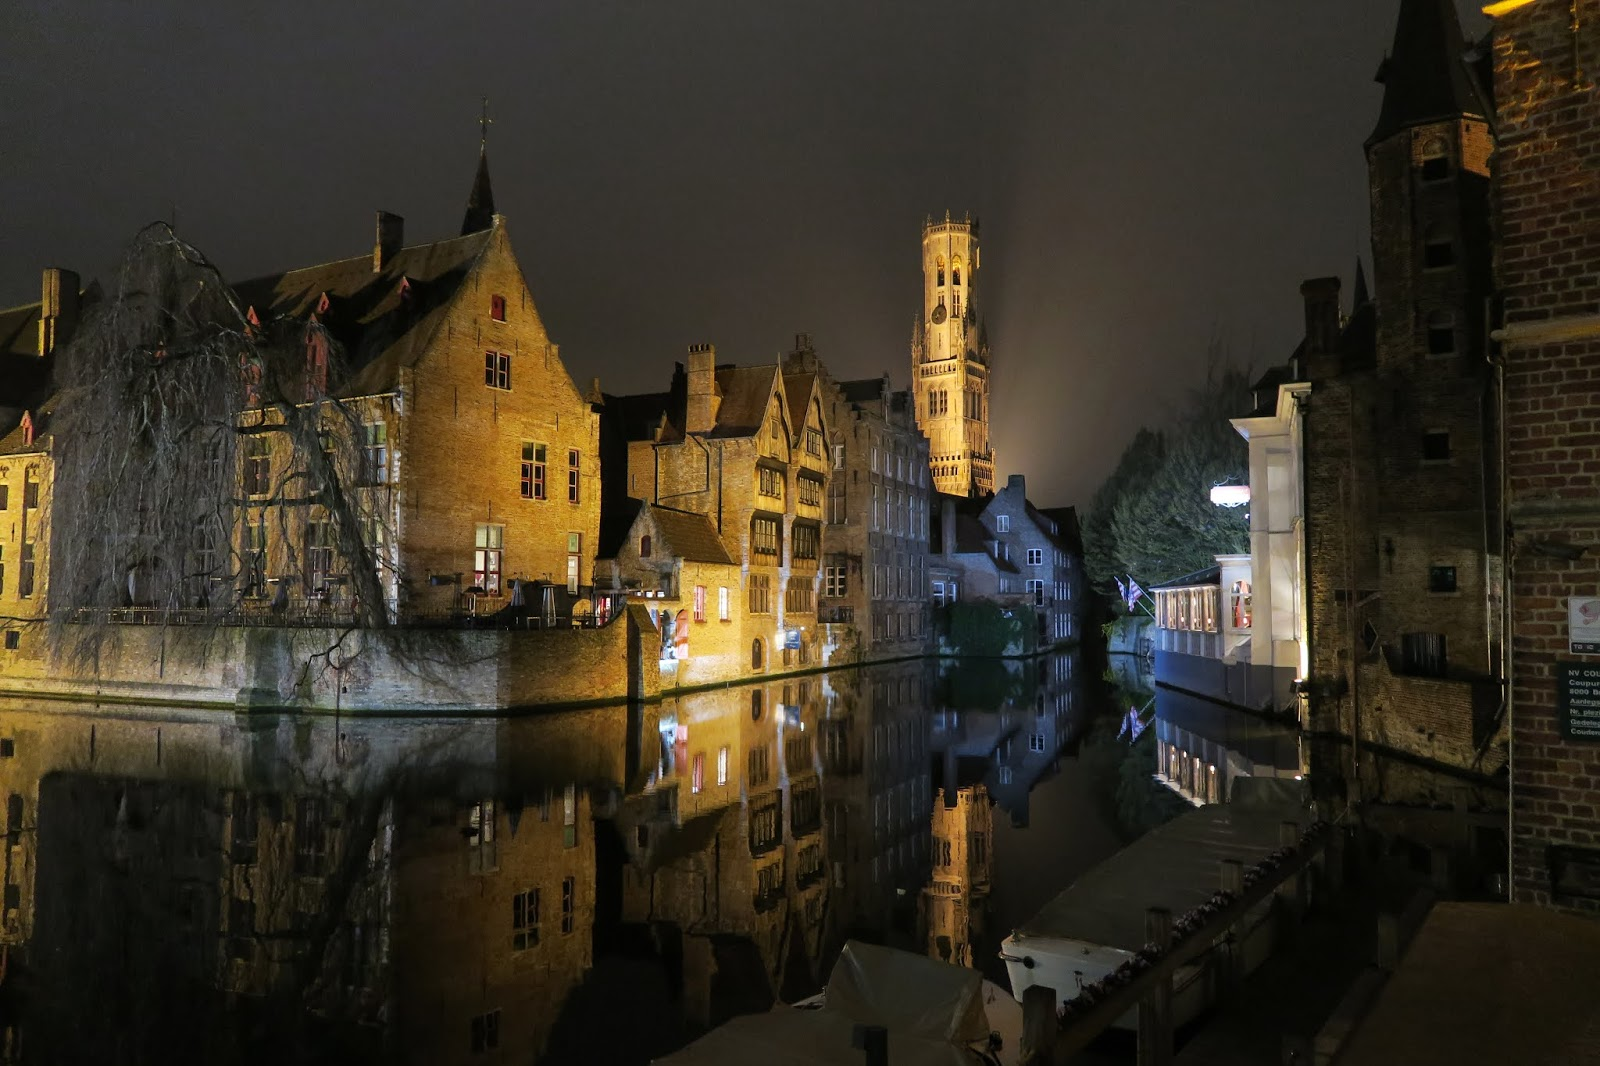 Bruges main canal at night with Bruges Belfry and other buildings lit up